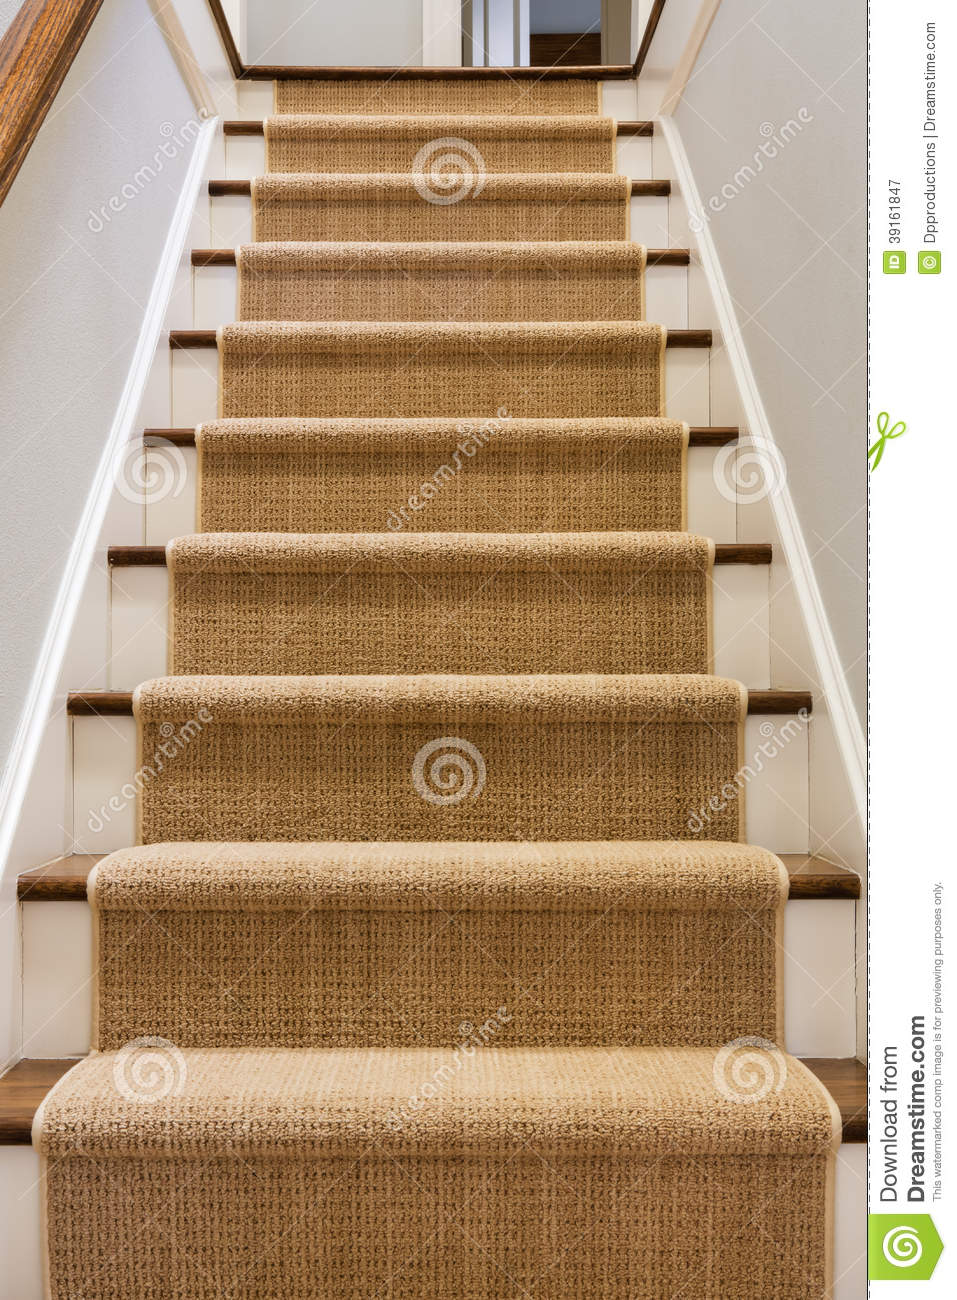 Wooden Staircase With Carpet Runner Stock Image Image Of